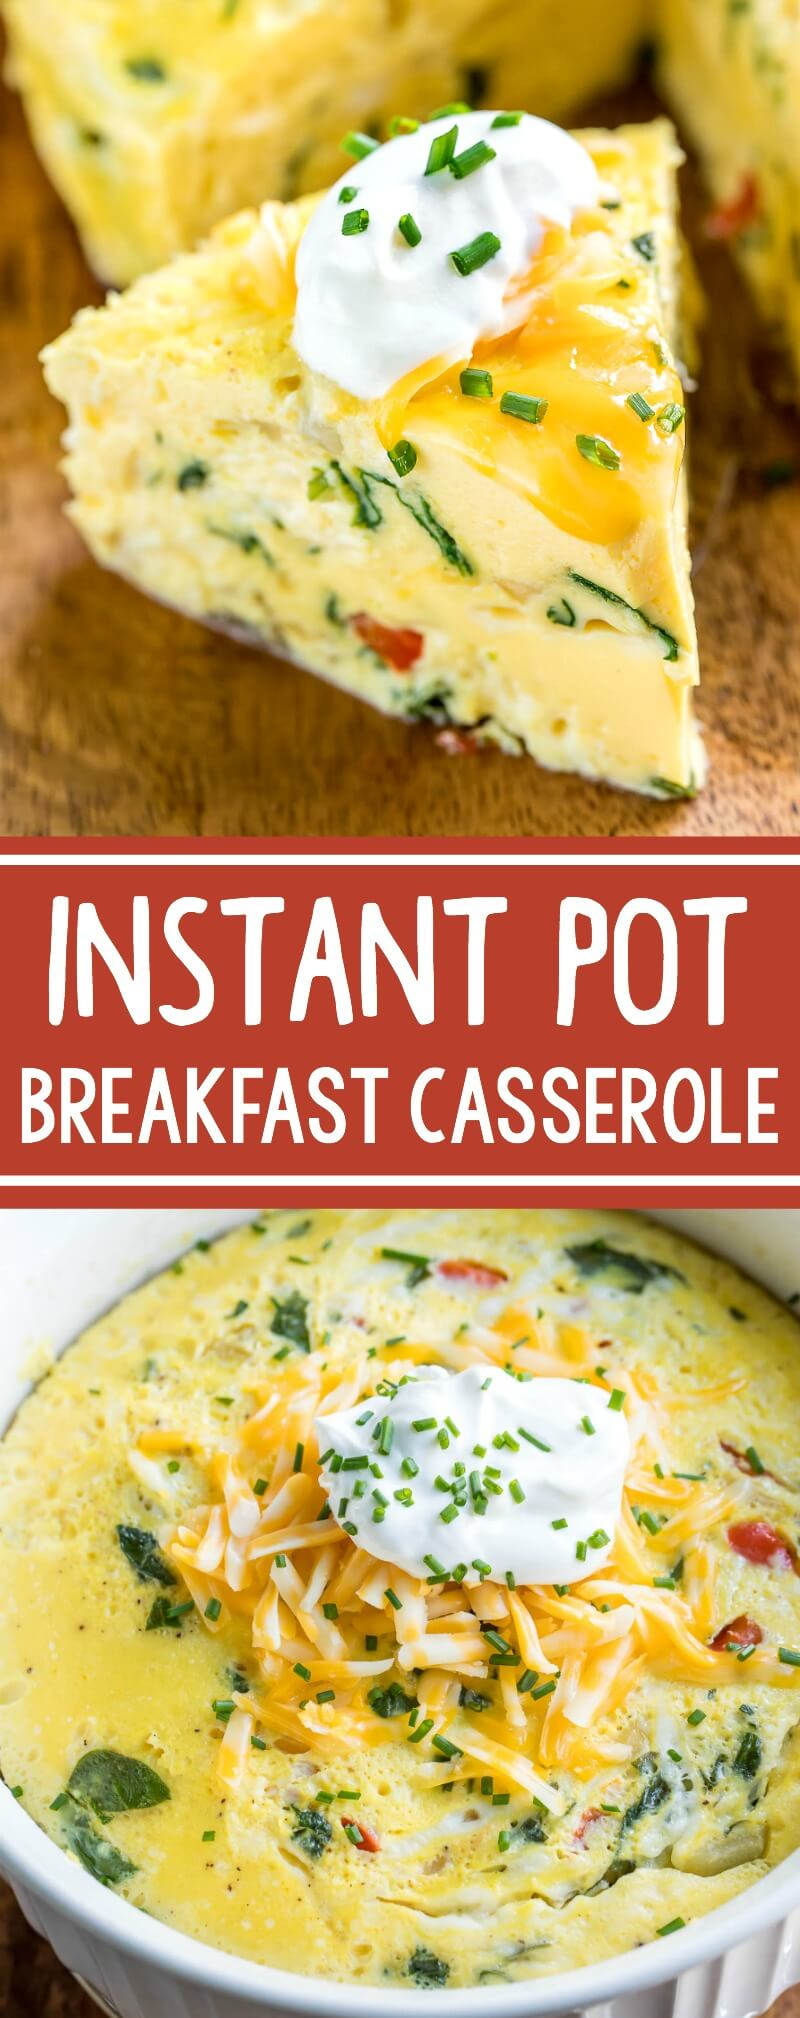 This Instant Pot Breakfast Casserole is basically the deep-dish crust-less quiche of my dreams! Serve it up for breakfast, brunch, or brinner and feel free to make it in advance - it's great the following day! #instantpot #pressurecooker #breakfast #casserole #eggs #vegetarian